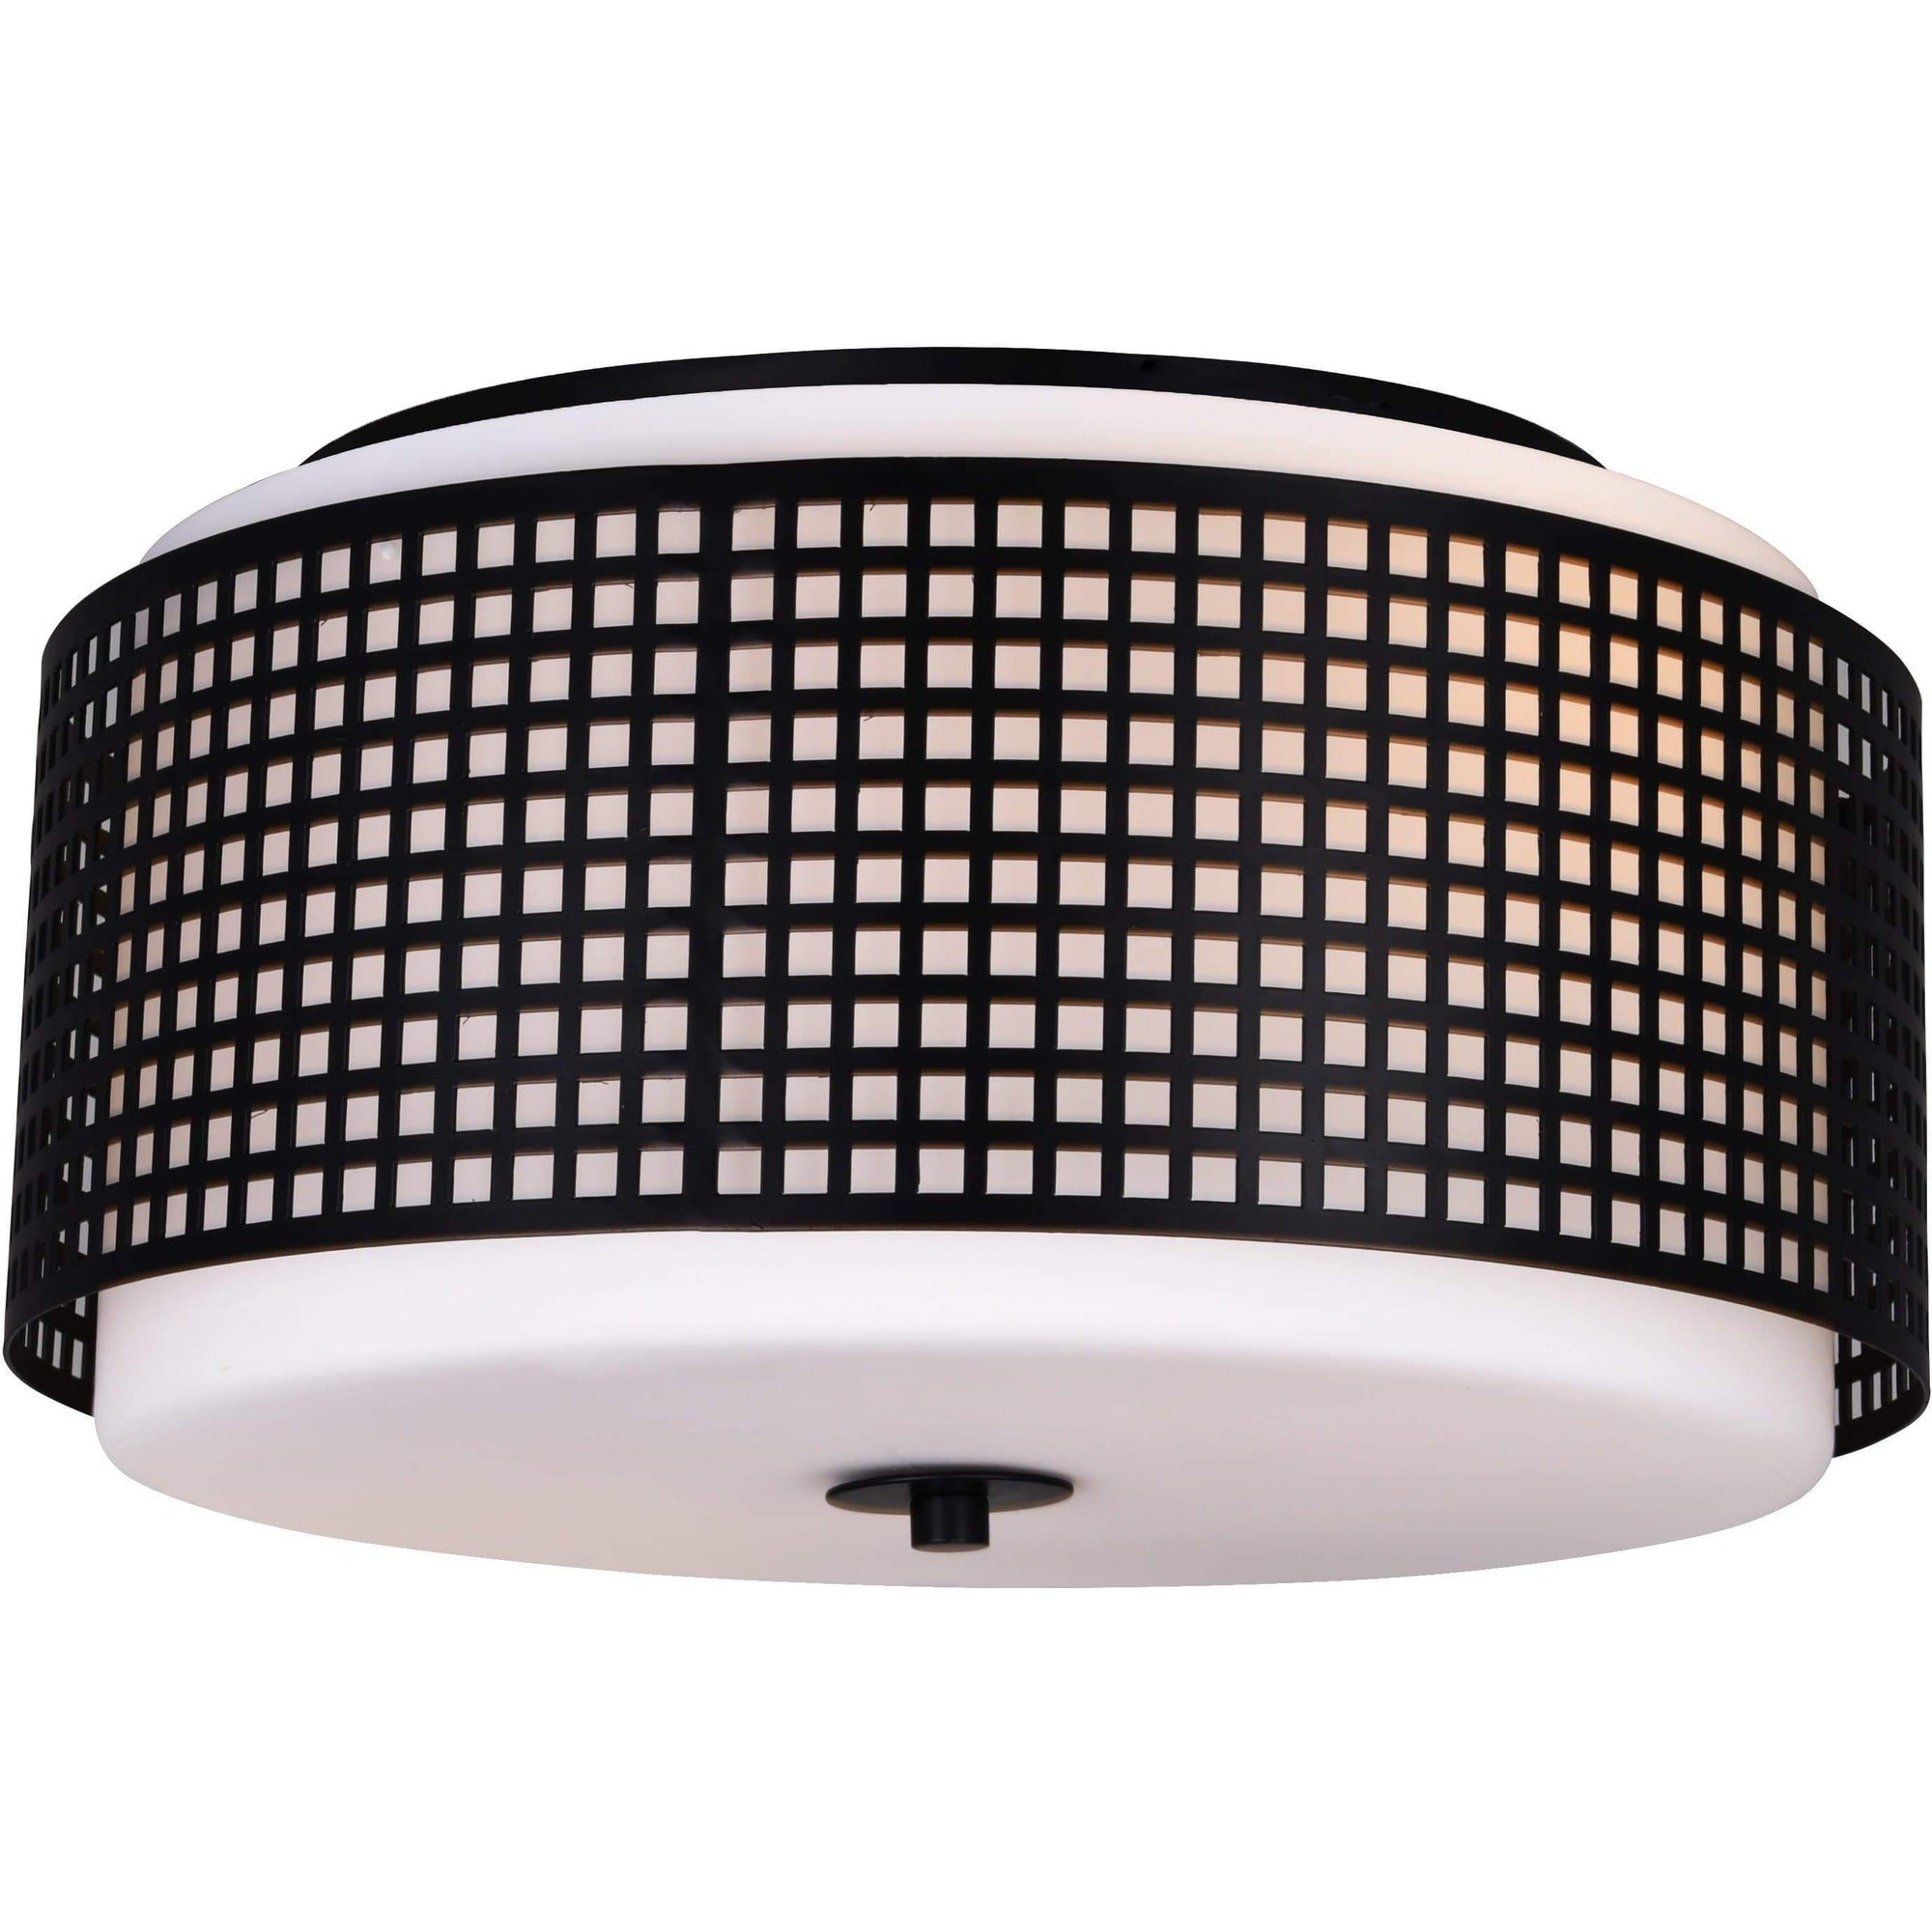 CWI Lighting Flush Mounts Black Checkered 2 Light Drum Shade Flush Mount with Black finish by CWI Lighting 5209C15B